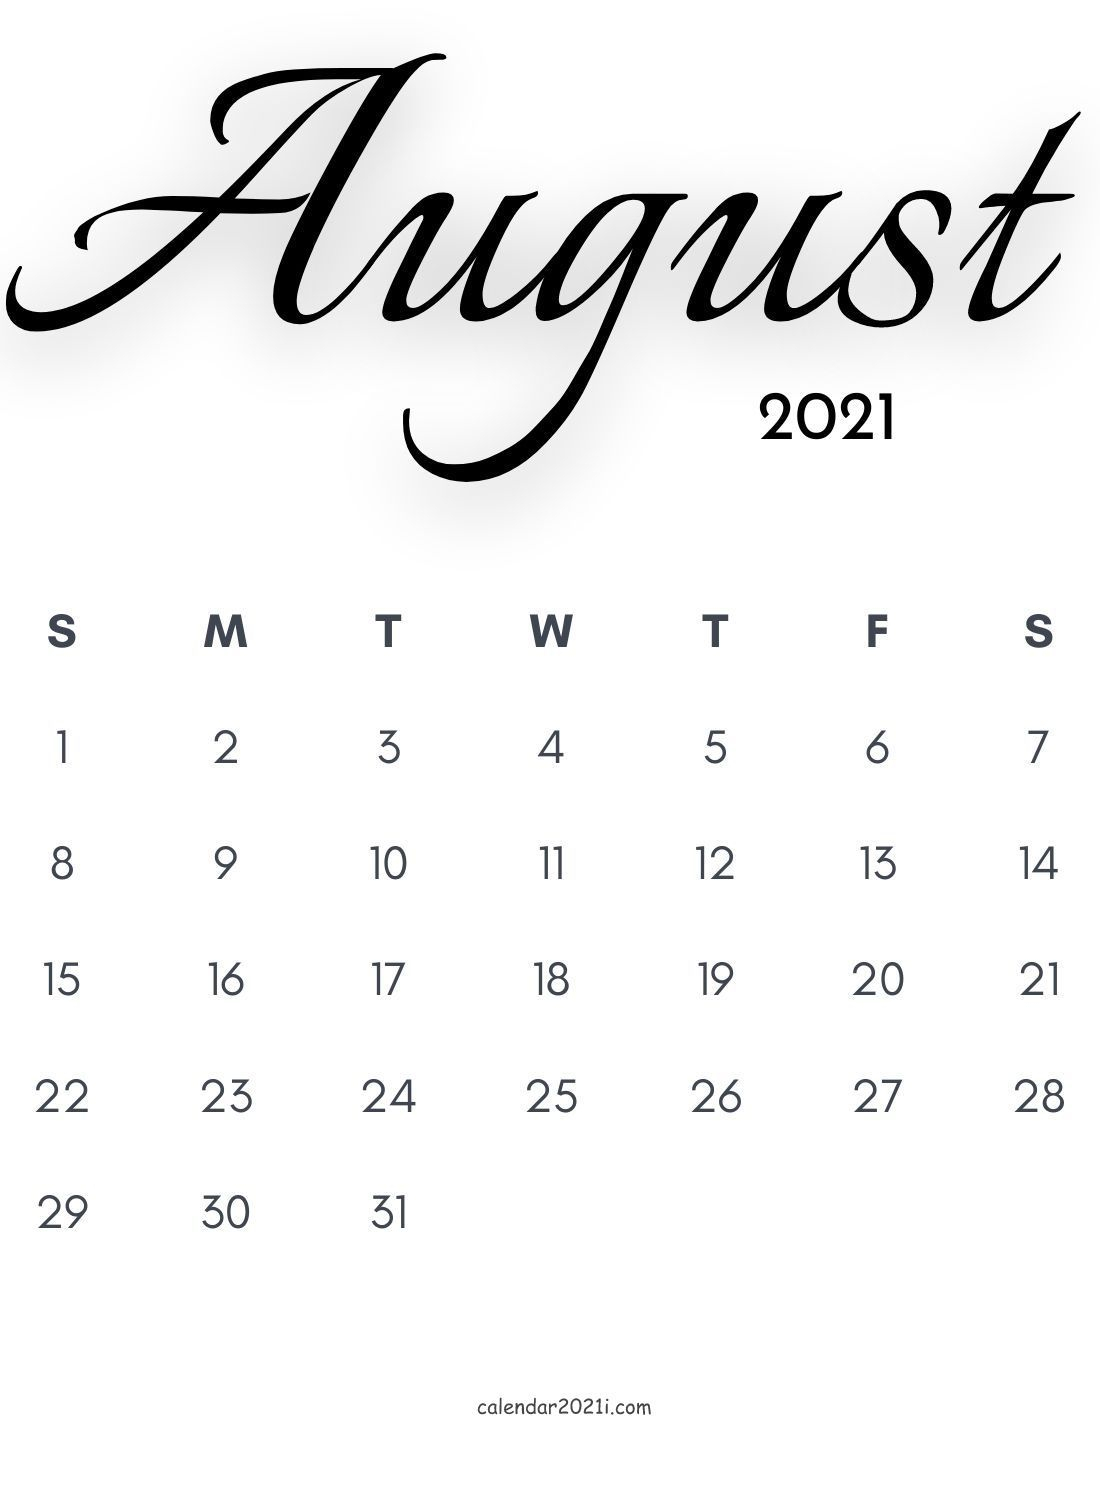 August 2021 Calligraphy Calendar Free Download | Calligraphy